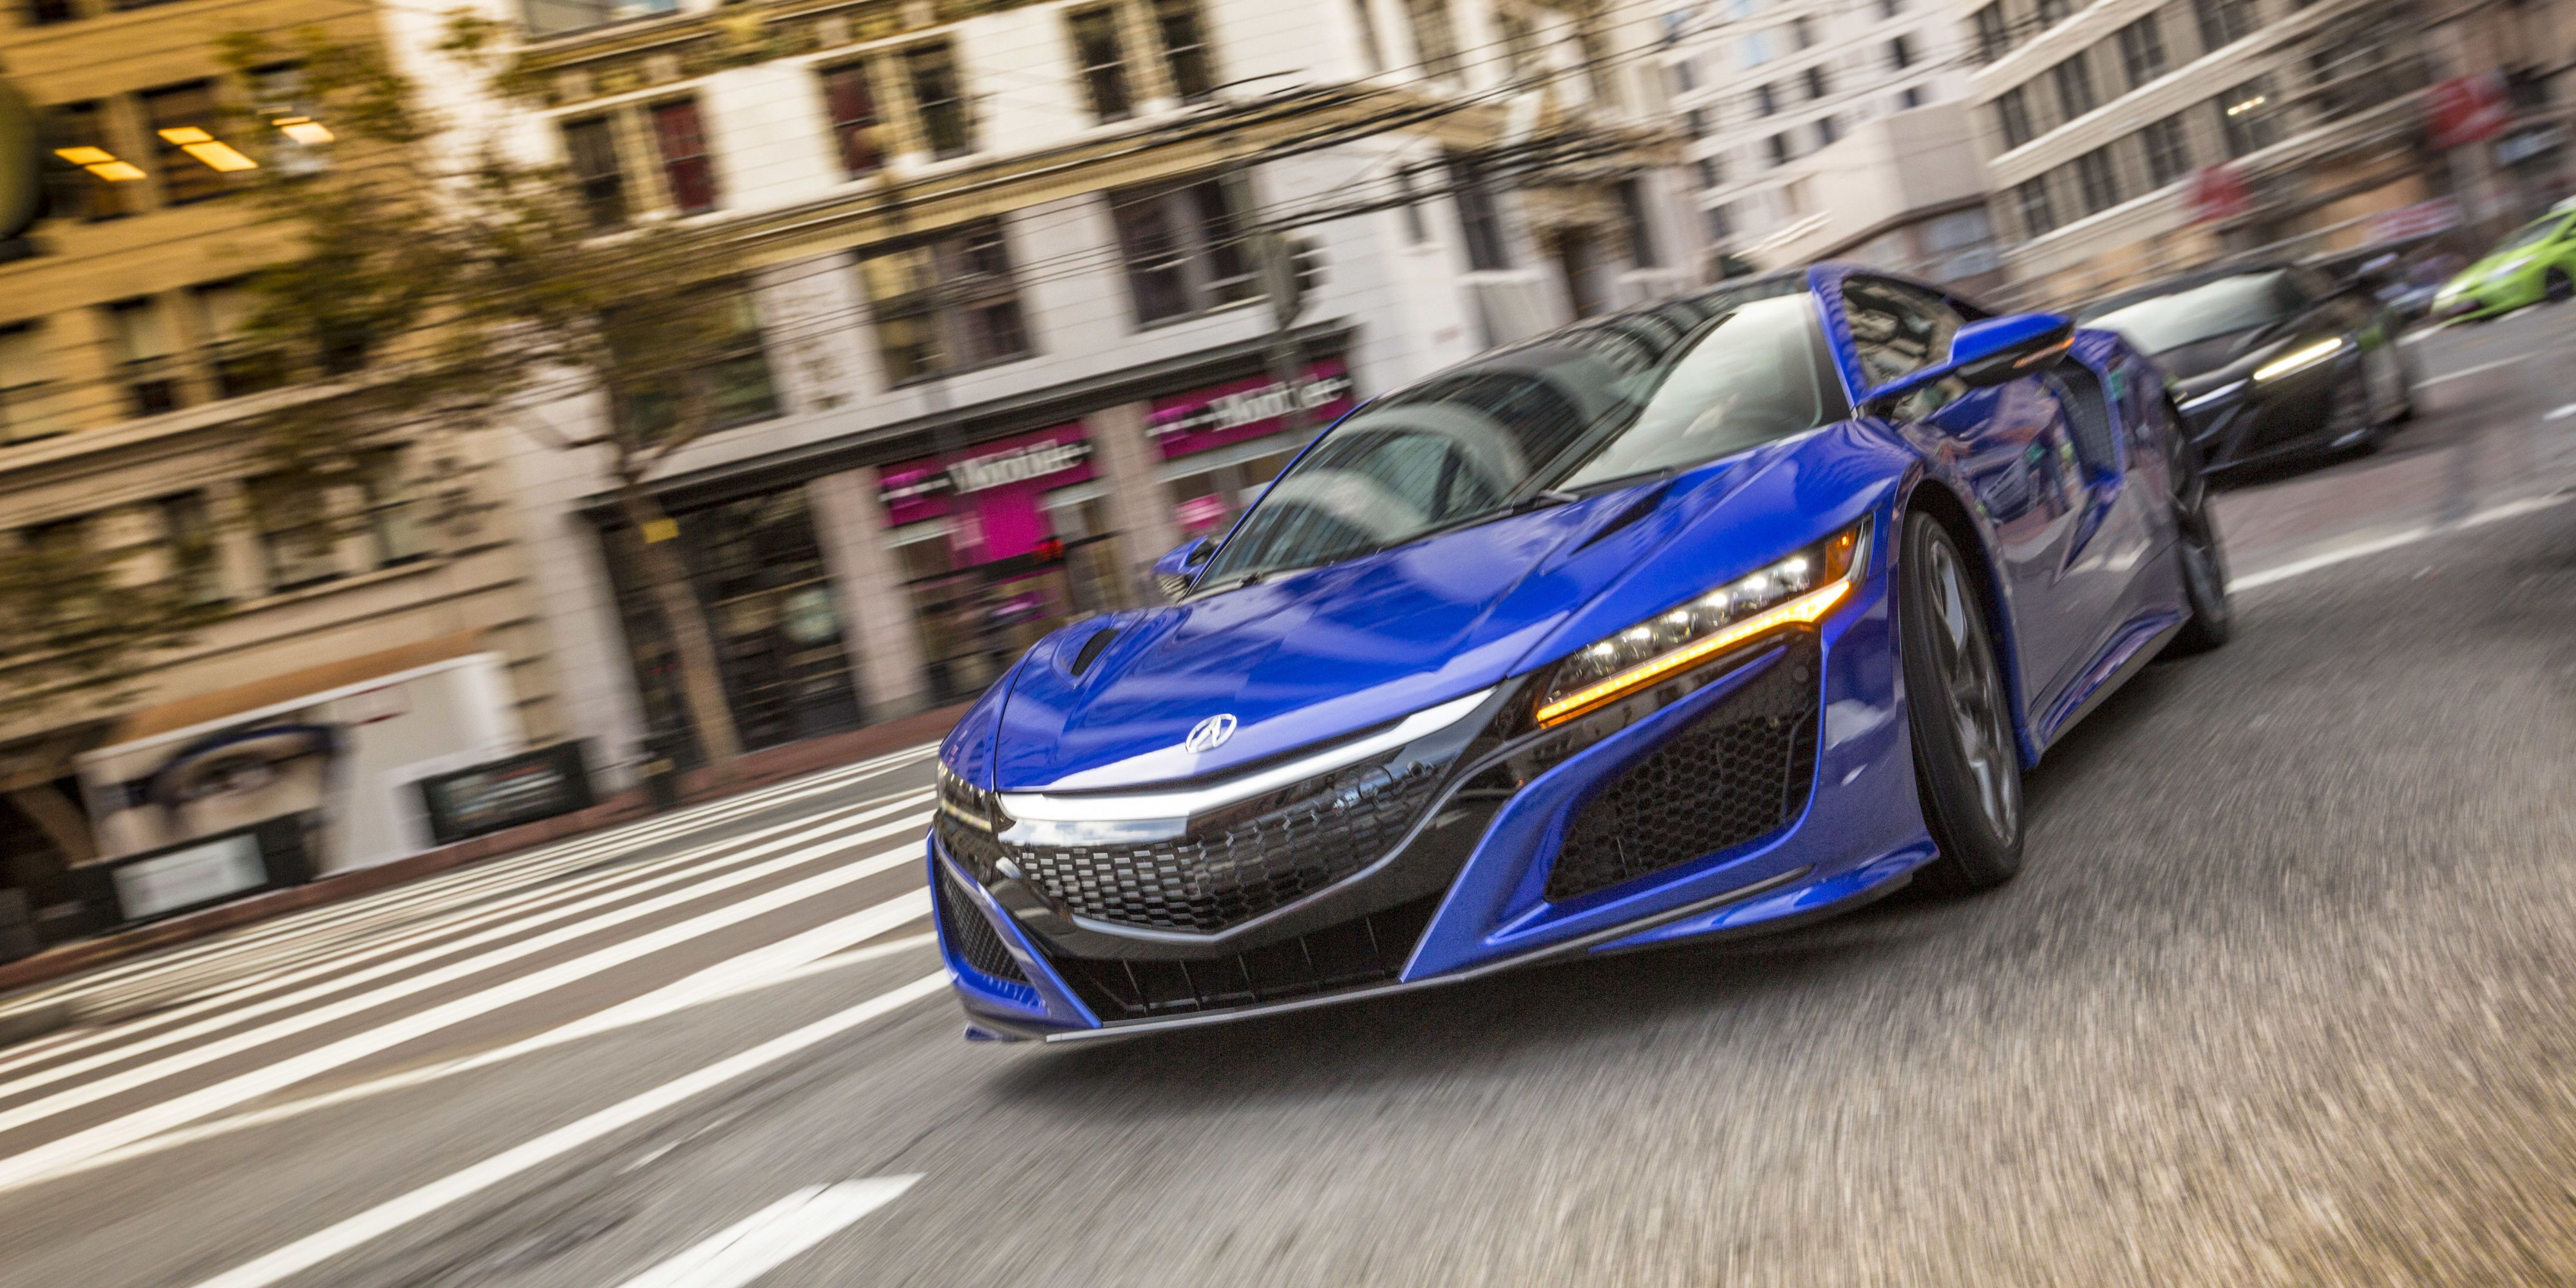 U003cpu003eThe New Acura NSX Is The Same As The Old NSX In Name